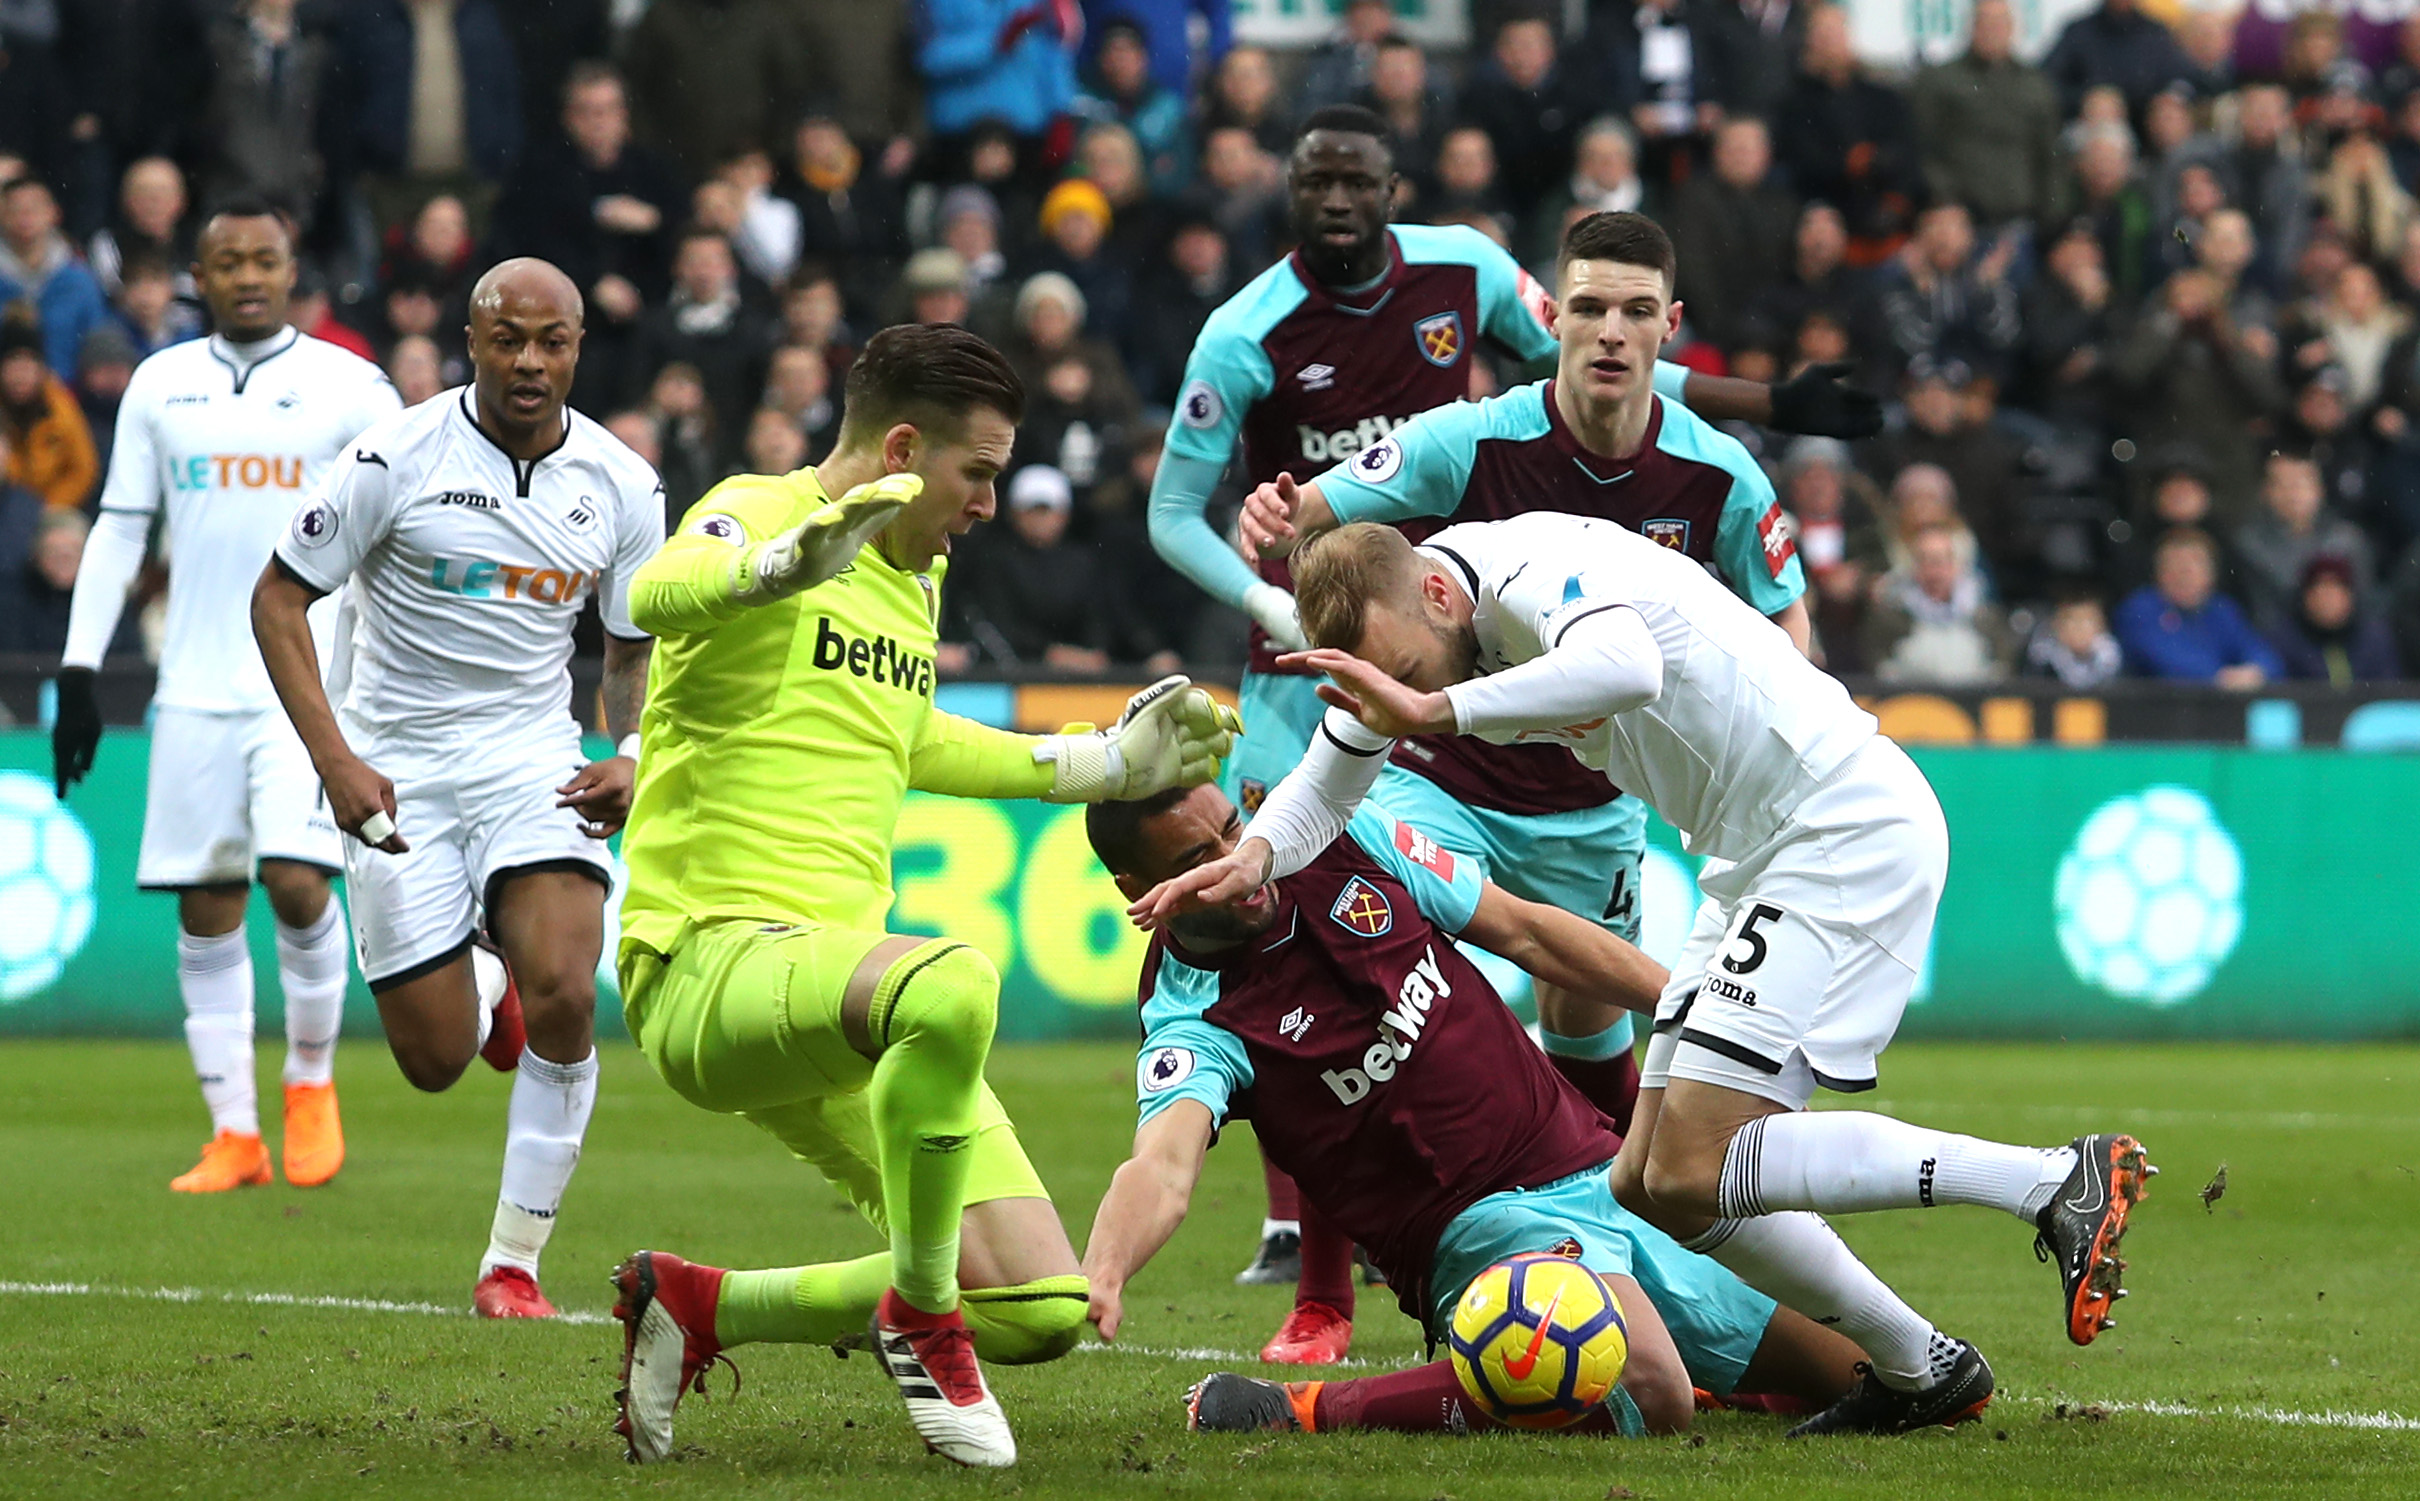 David Moyes hopes West Ham home form will prevent relegation